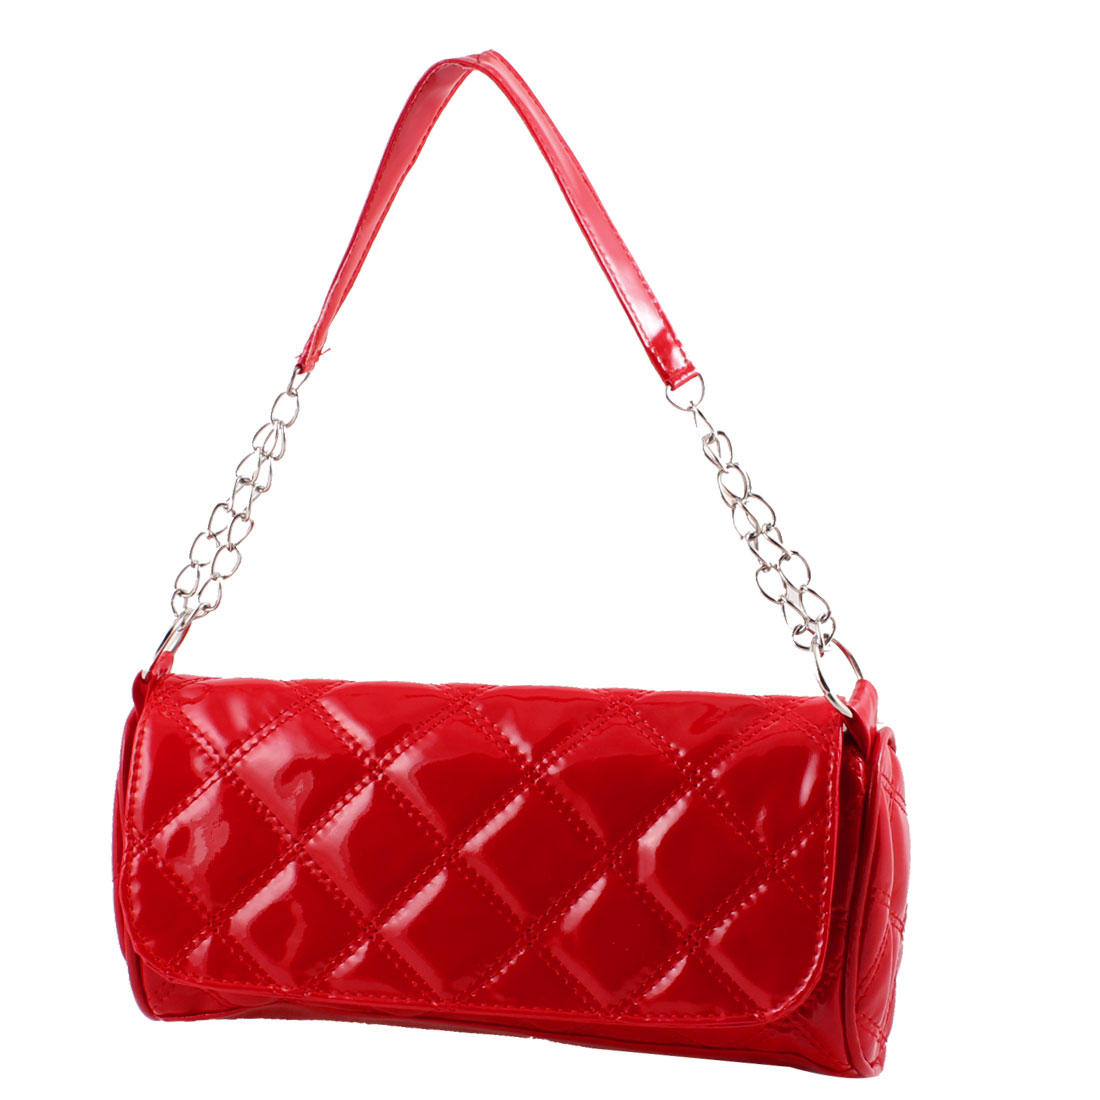 Lozenge Pattern Patent Faux Leather Shoulder Bag Handbag Red for Women